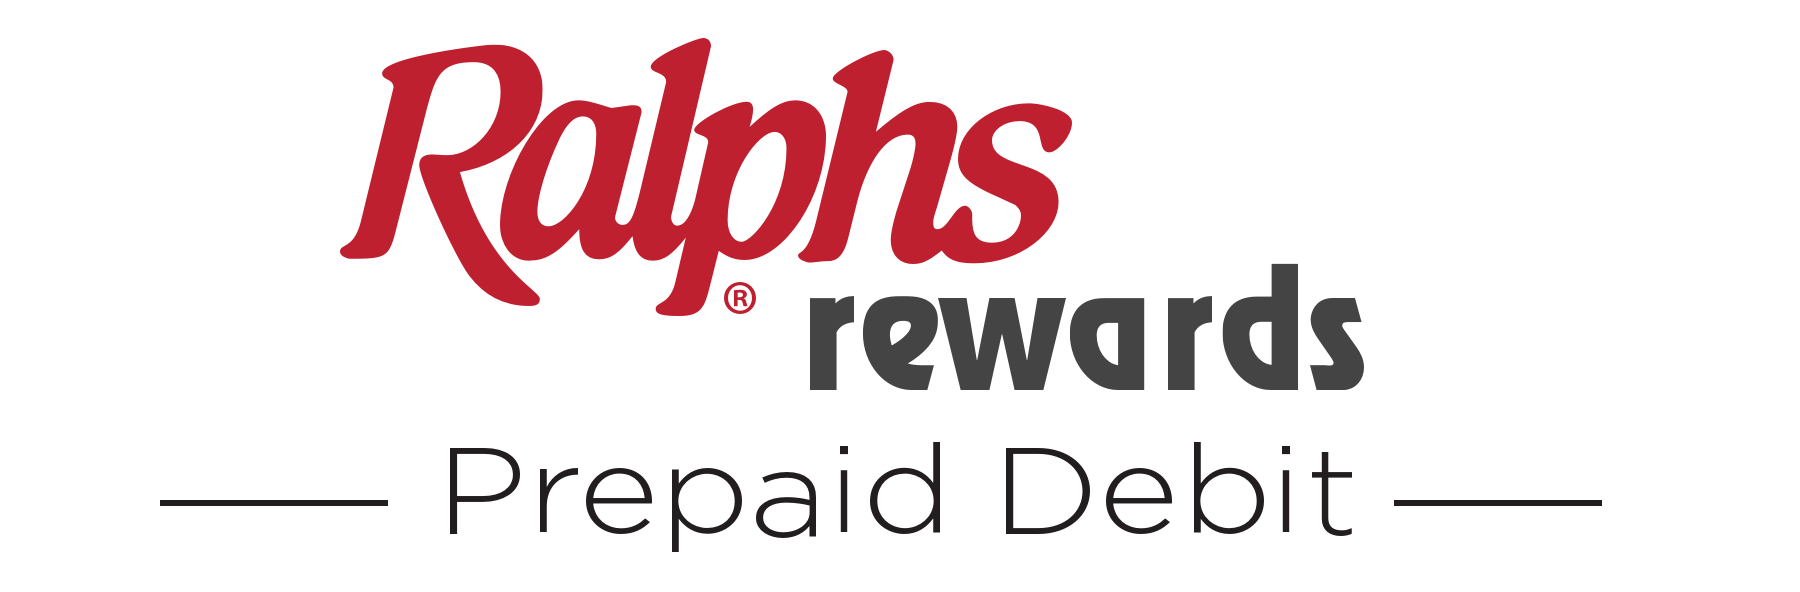 Ralphs Rewards Prepaid Debit Logo